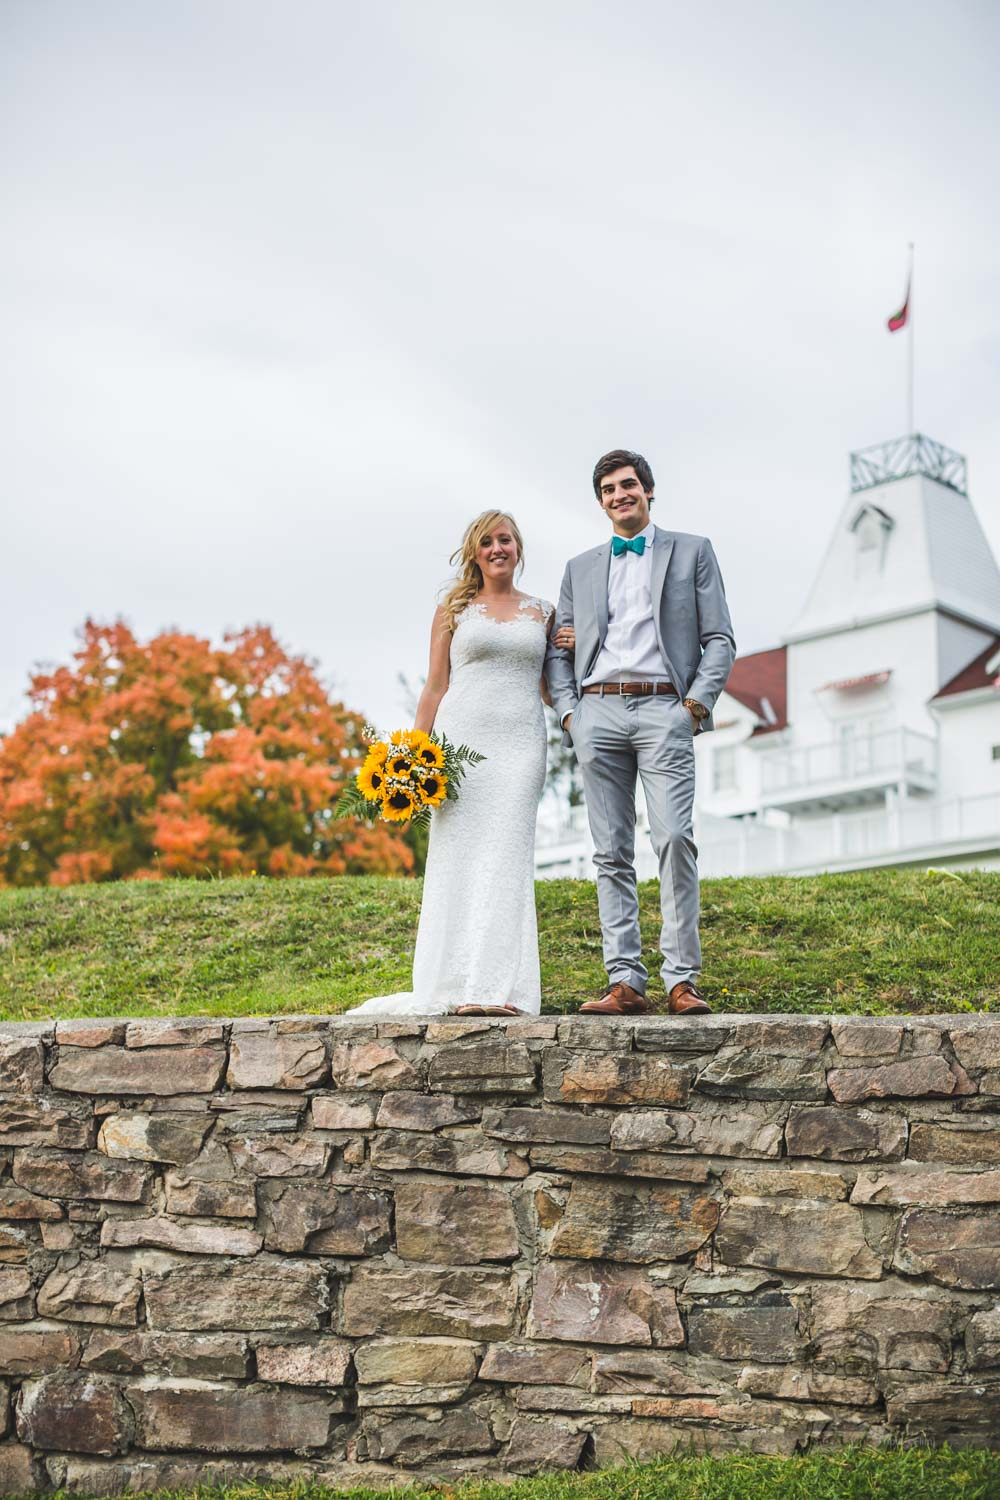 Muskoka Wedding Photographer-Jono & Laynie Co.068.jpg